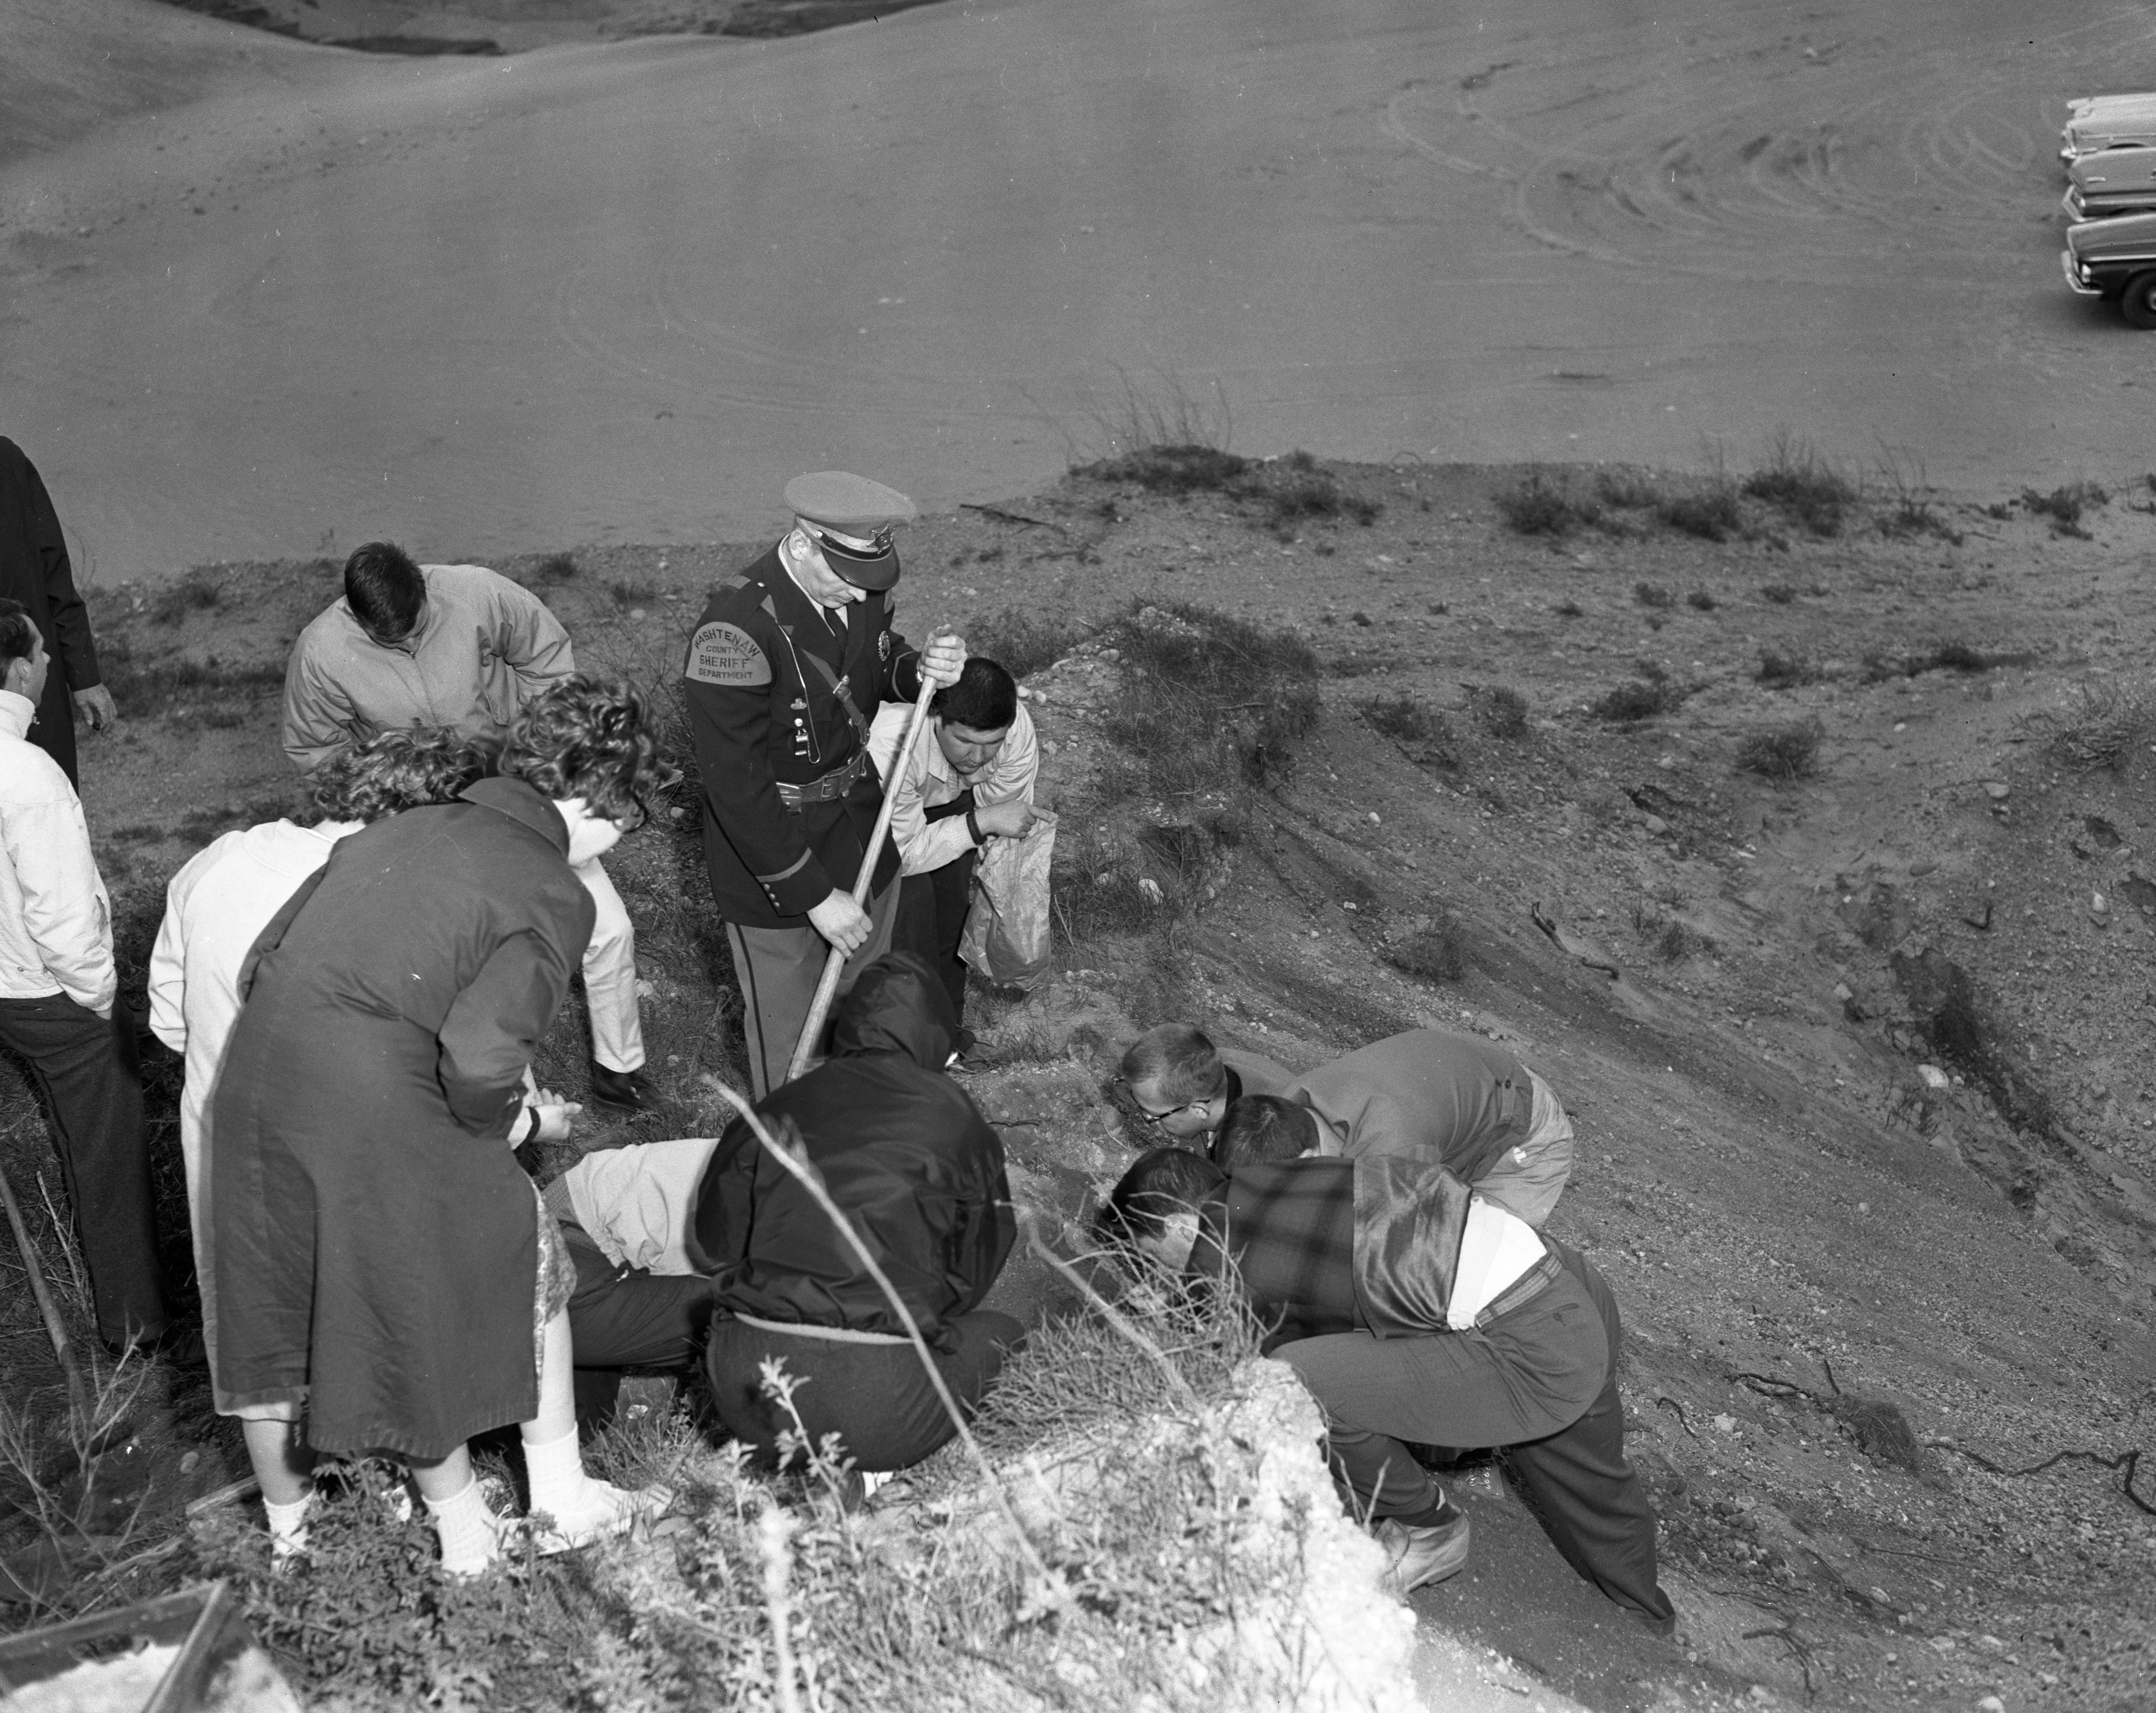 EMU Students Examine Skeleton They Found at Killins Gravel Pit, May 1963 image